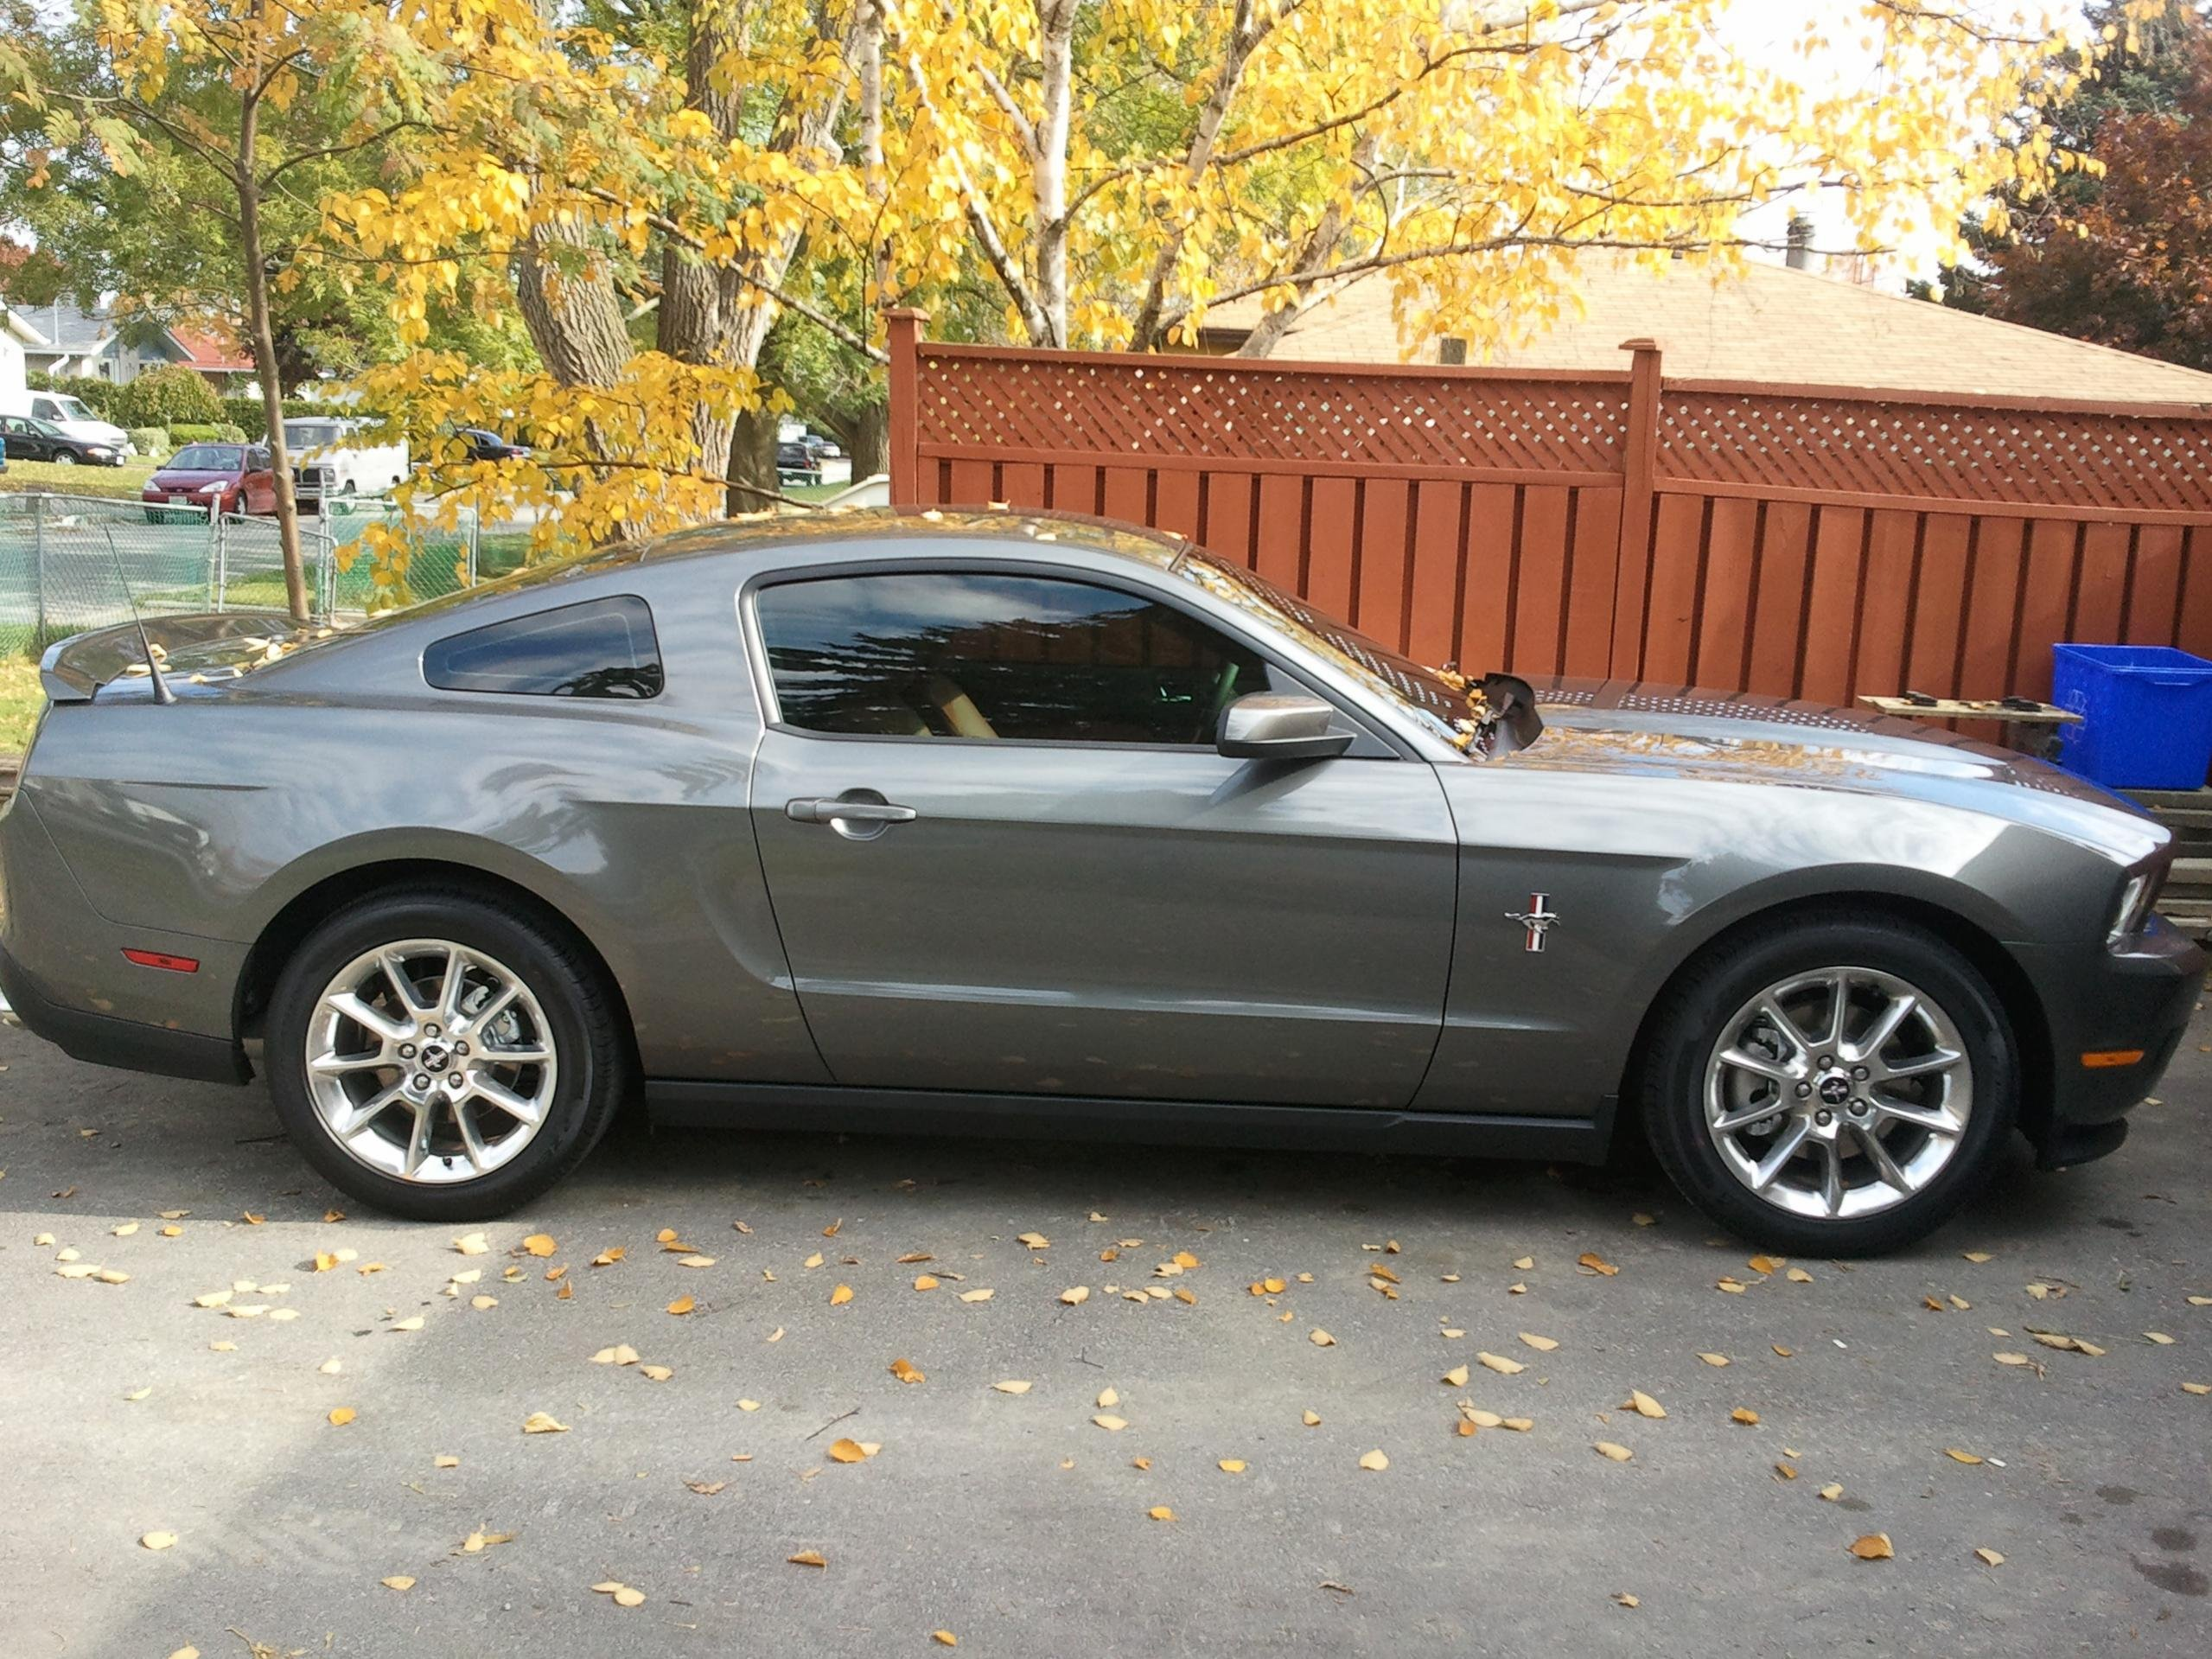 2011 2014 Mustang V6 Pic Thread Page 4 Ford